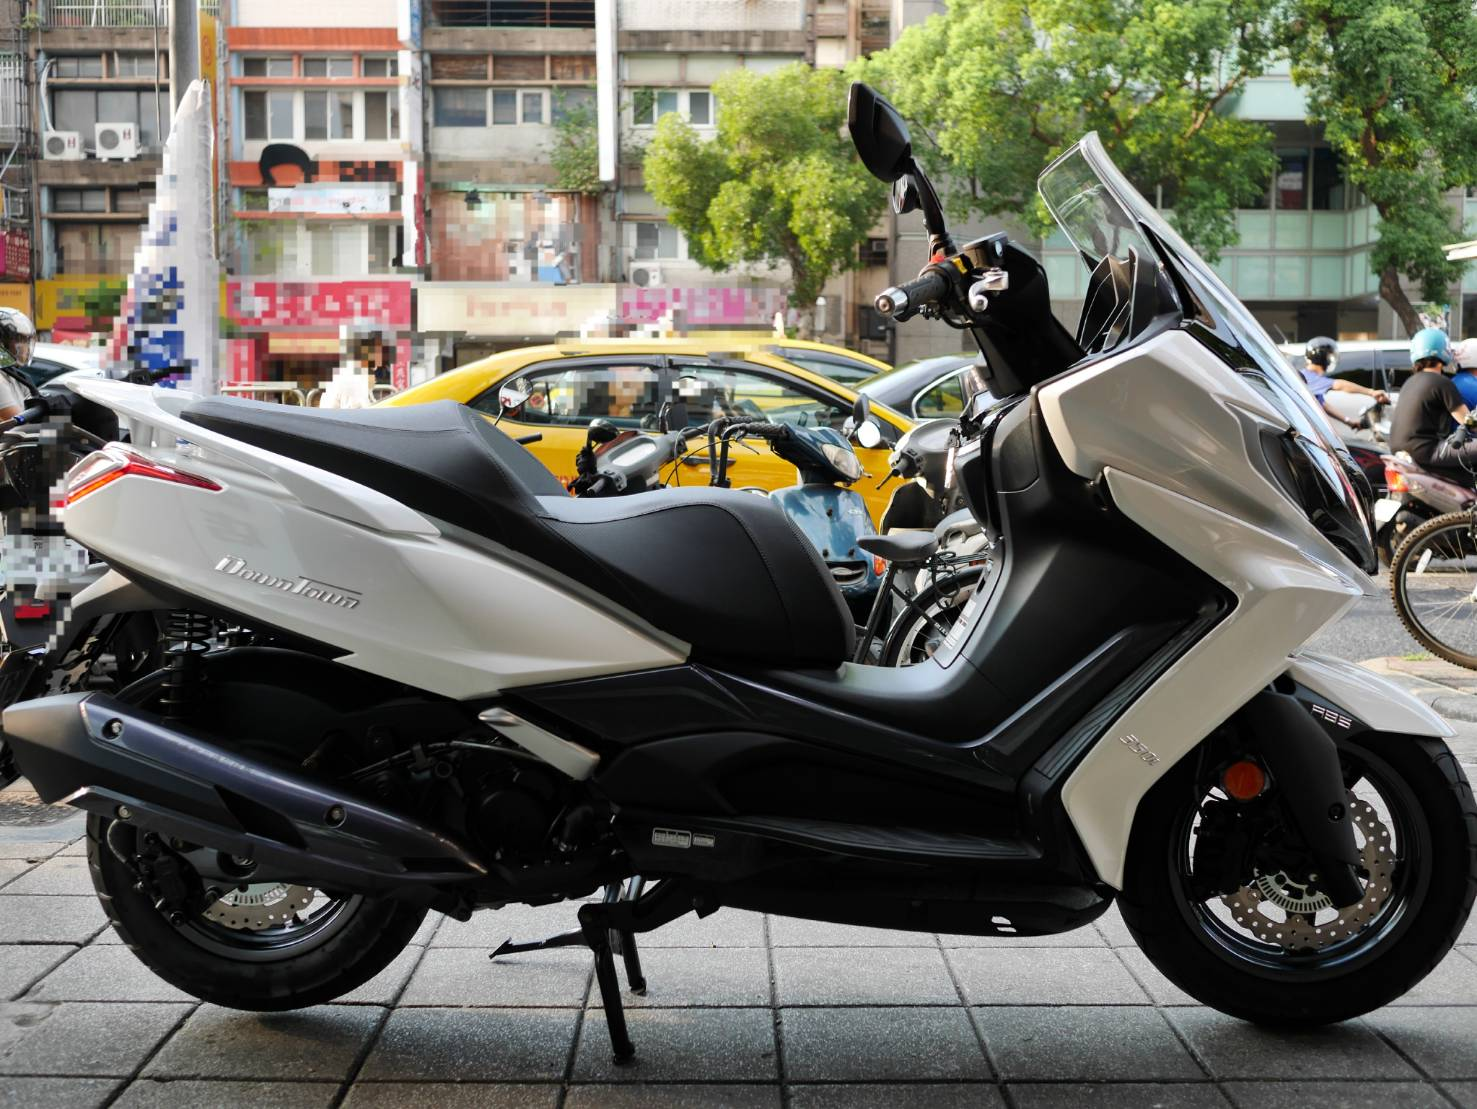 【個人自售】光陽 DOWNTOWN 350 - 「Webike-摩托車市」 KYMCO DownTown350 ABS